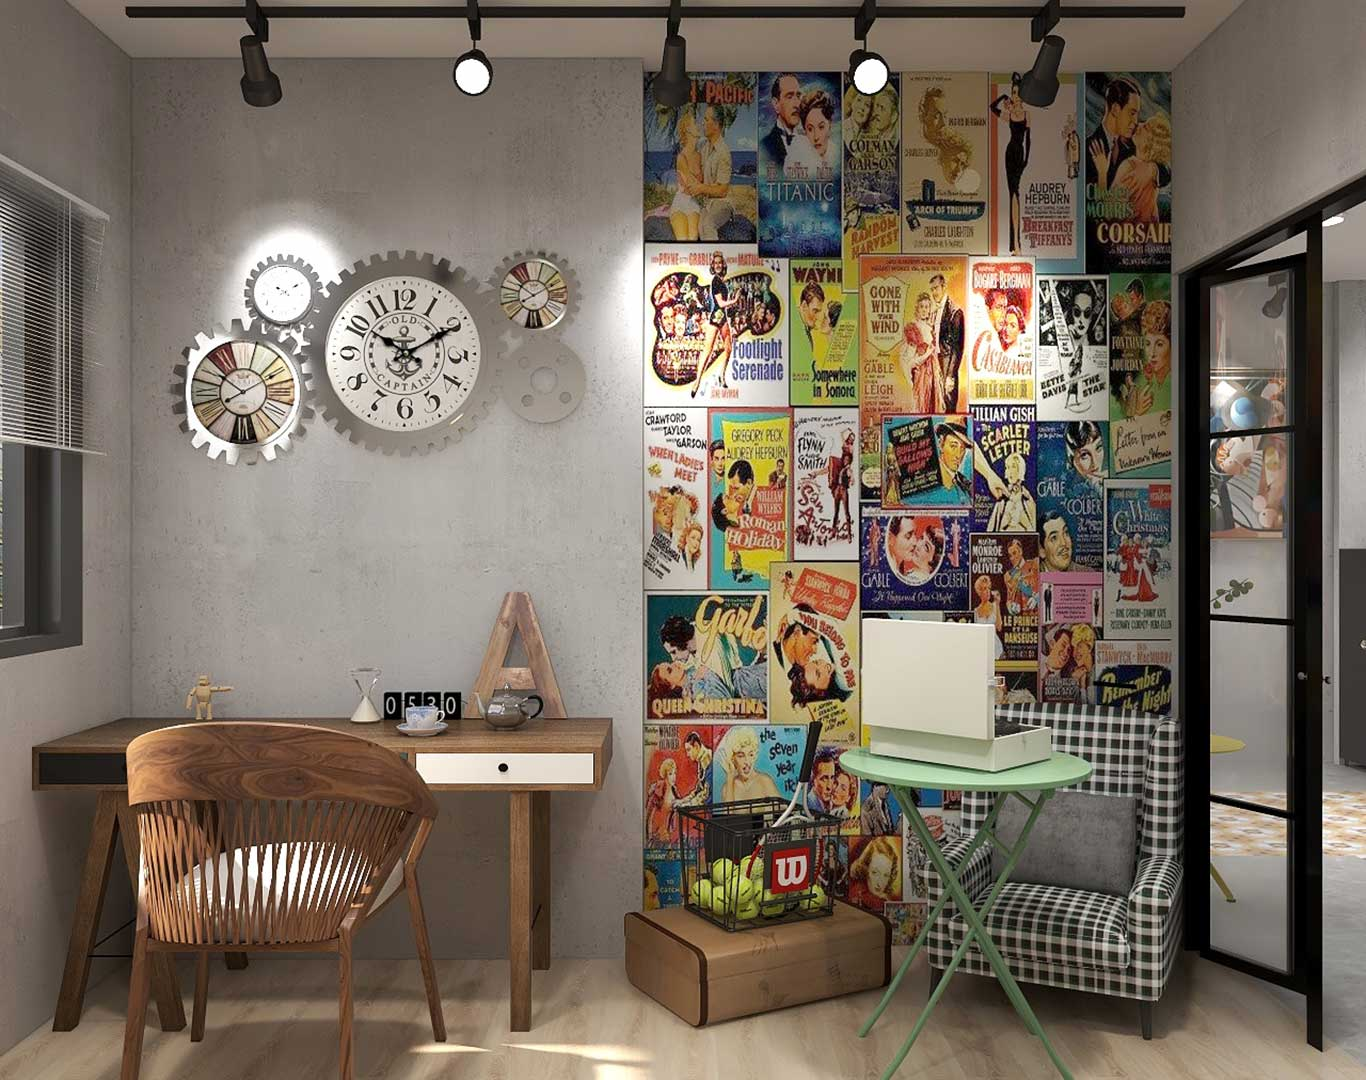 Retro Industrial fusion featuring retro posters and wall clock framed in gear icon as accent decors